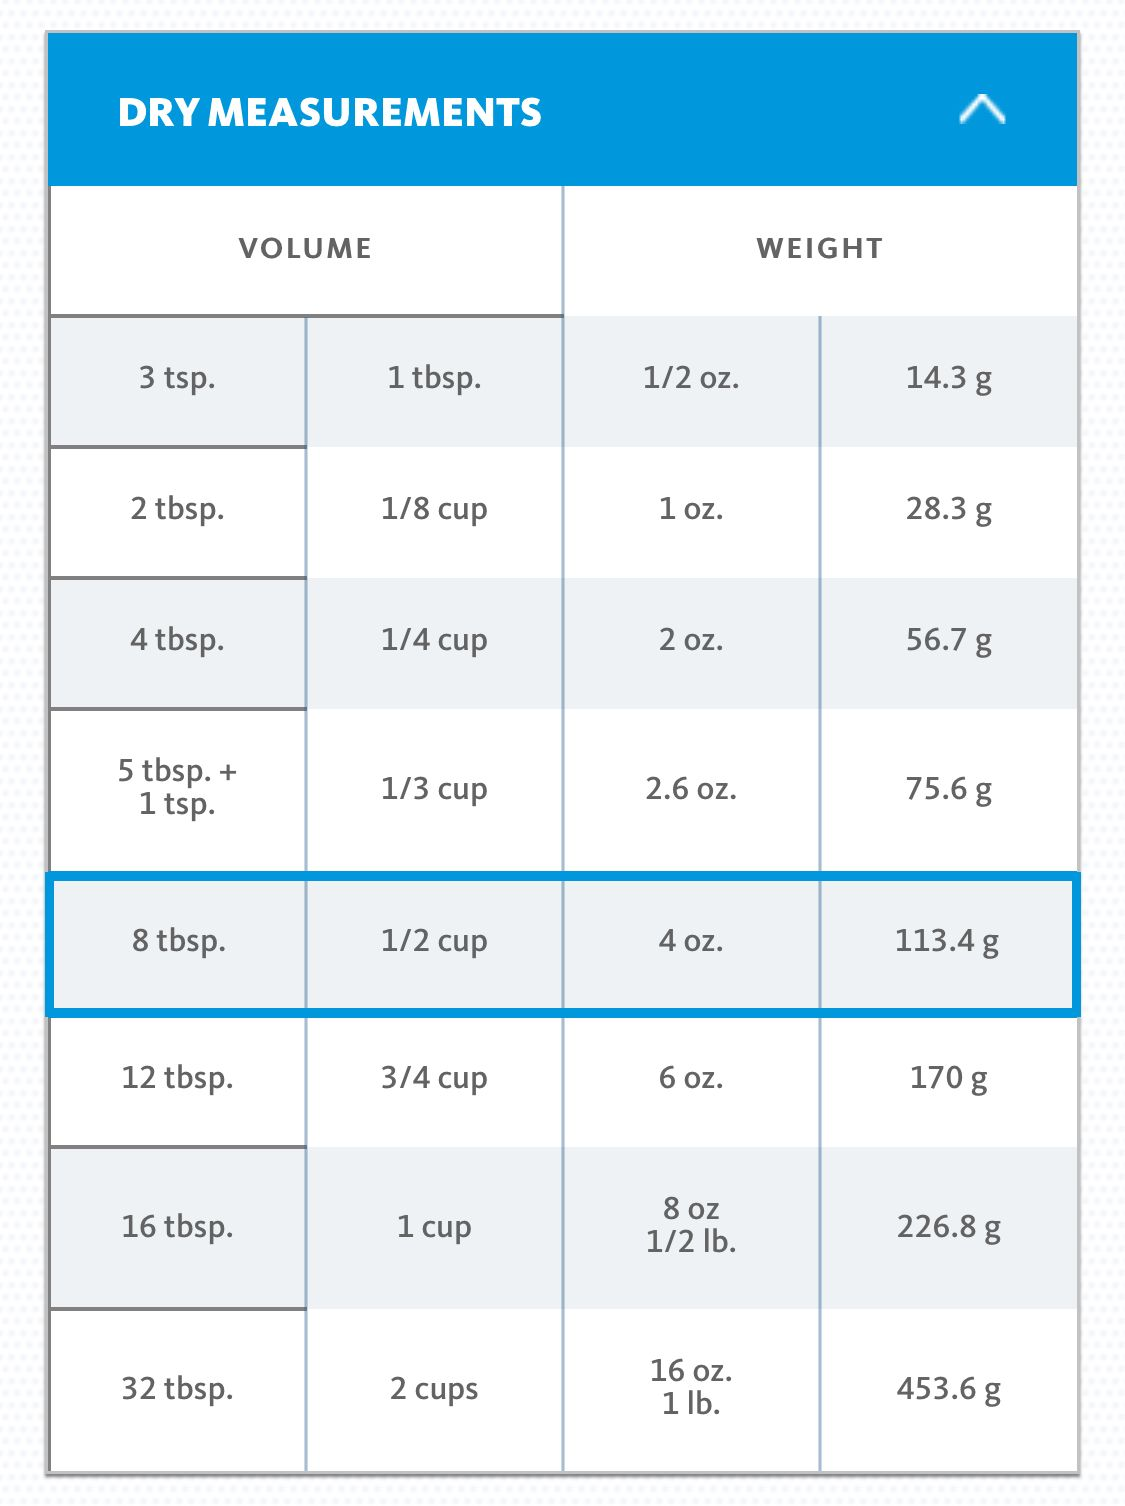 Conversion Table For Dry Measurements